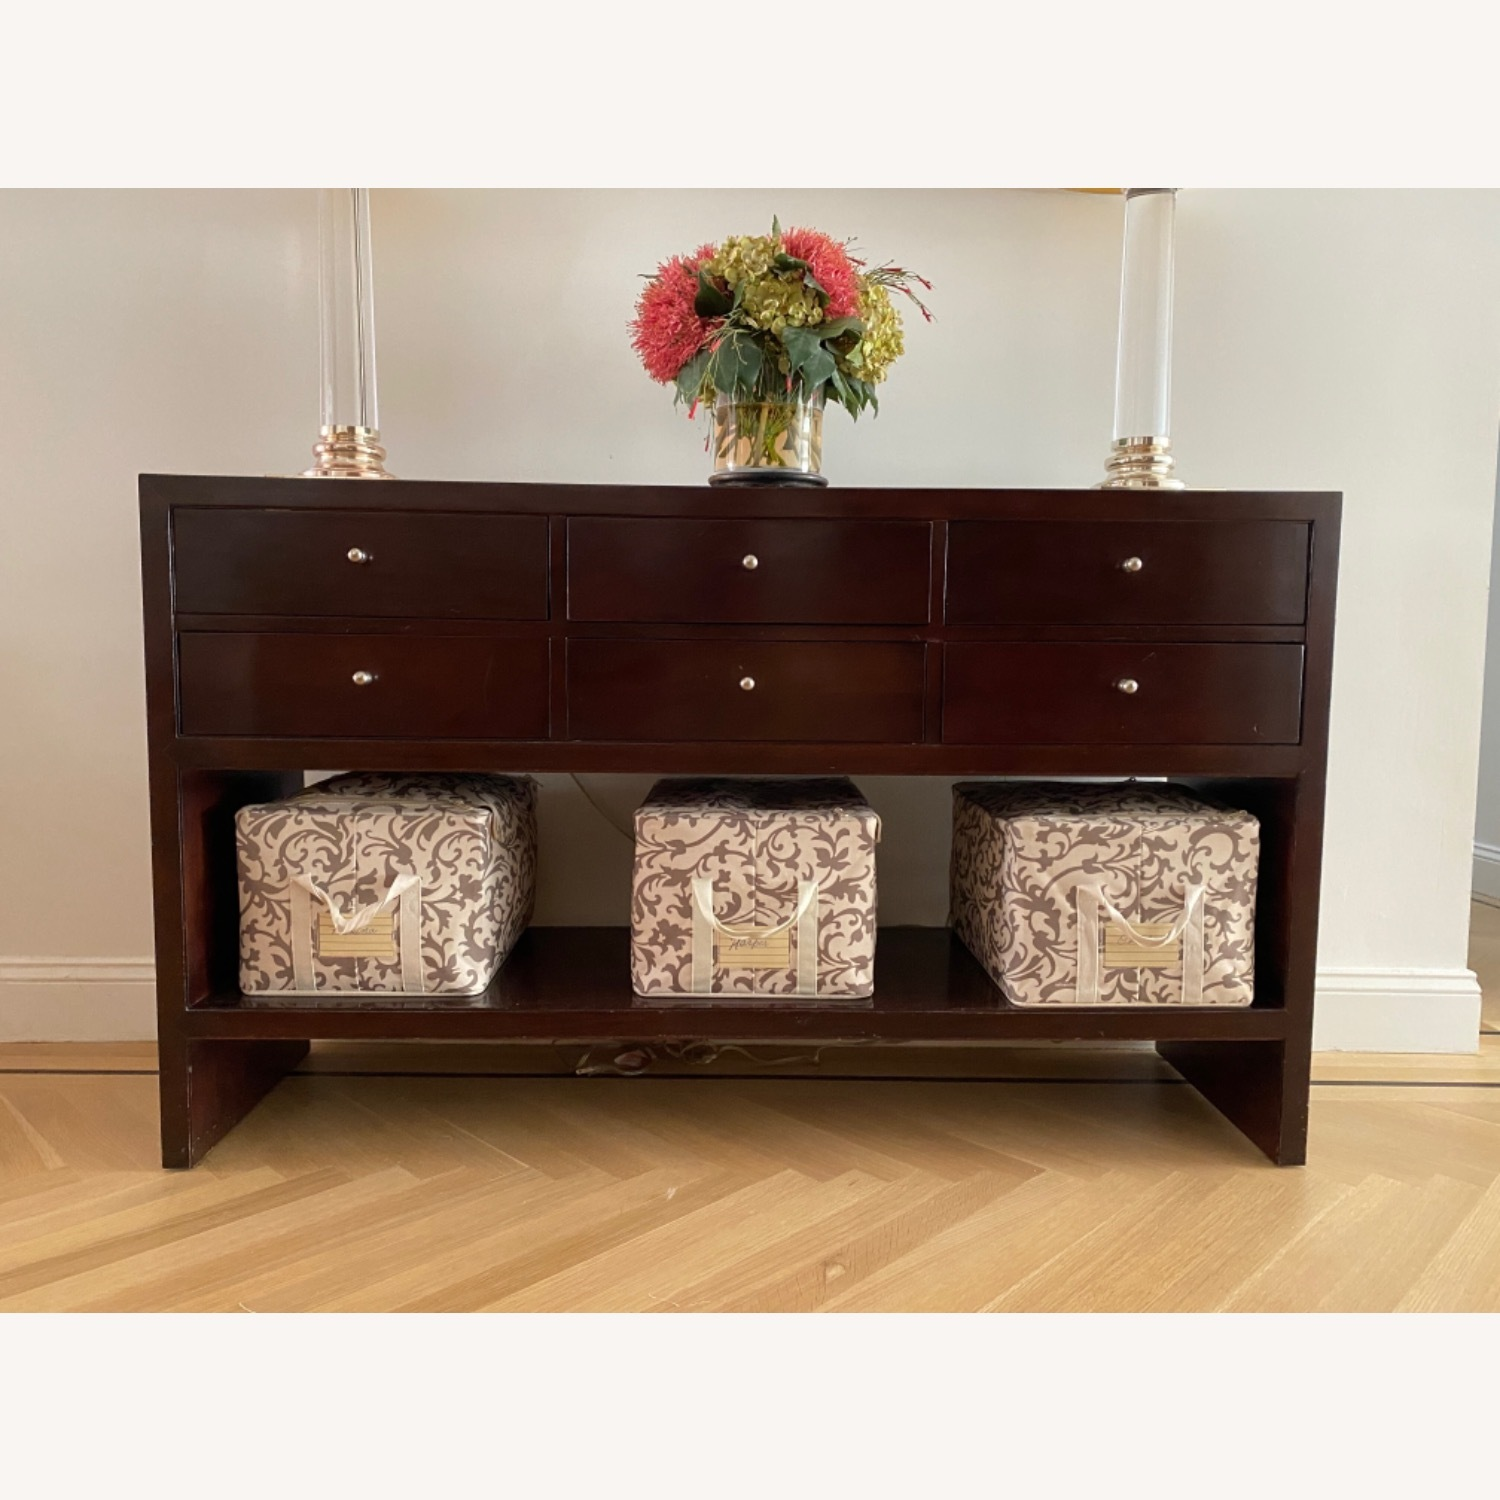 Baker Mid Century Modern Console Table - image-1